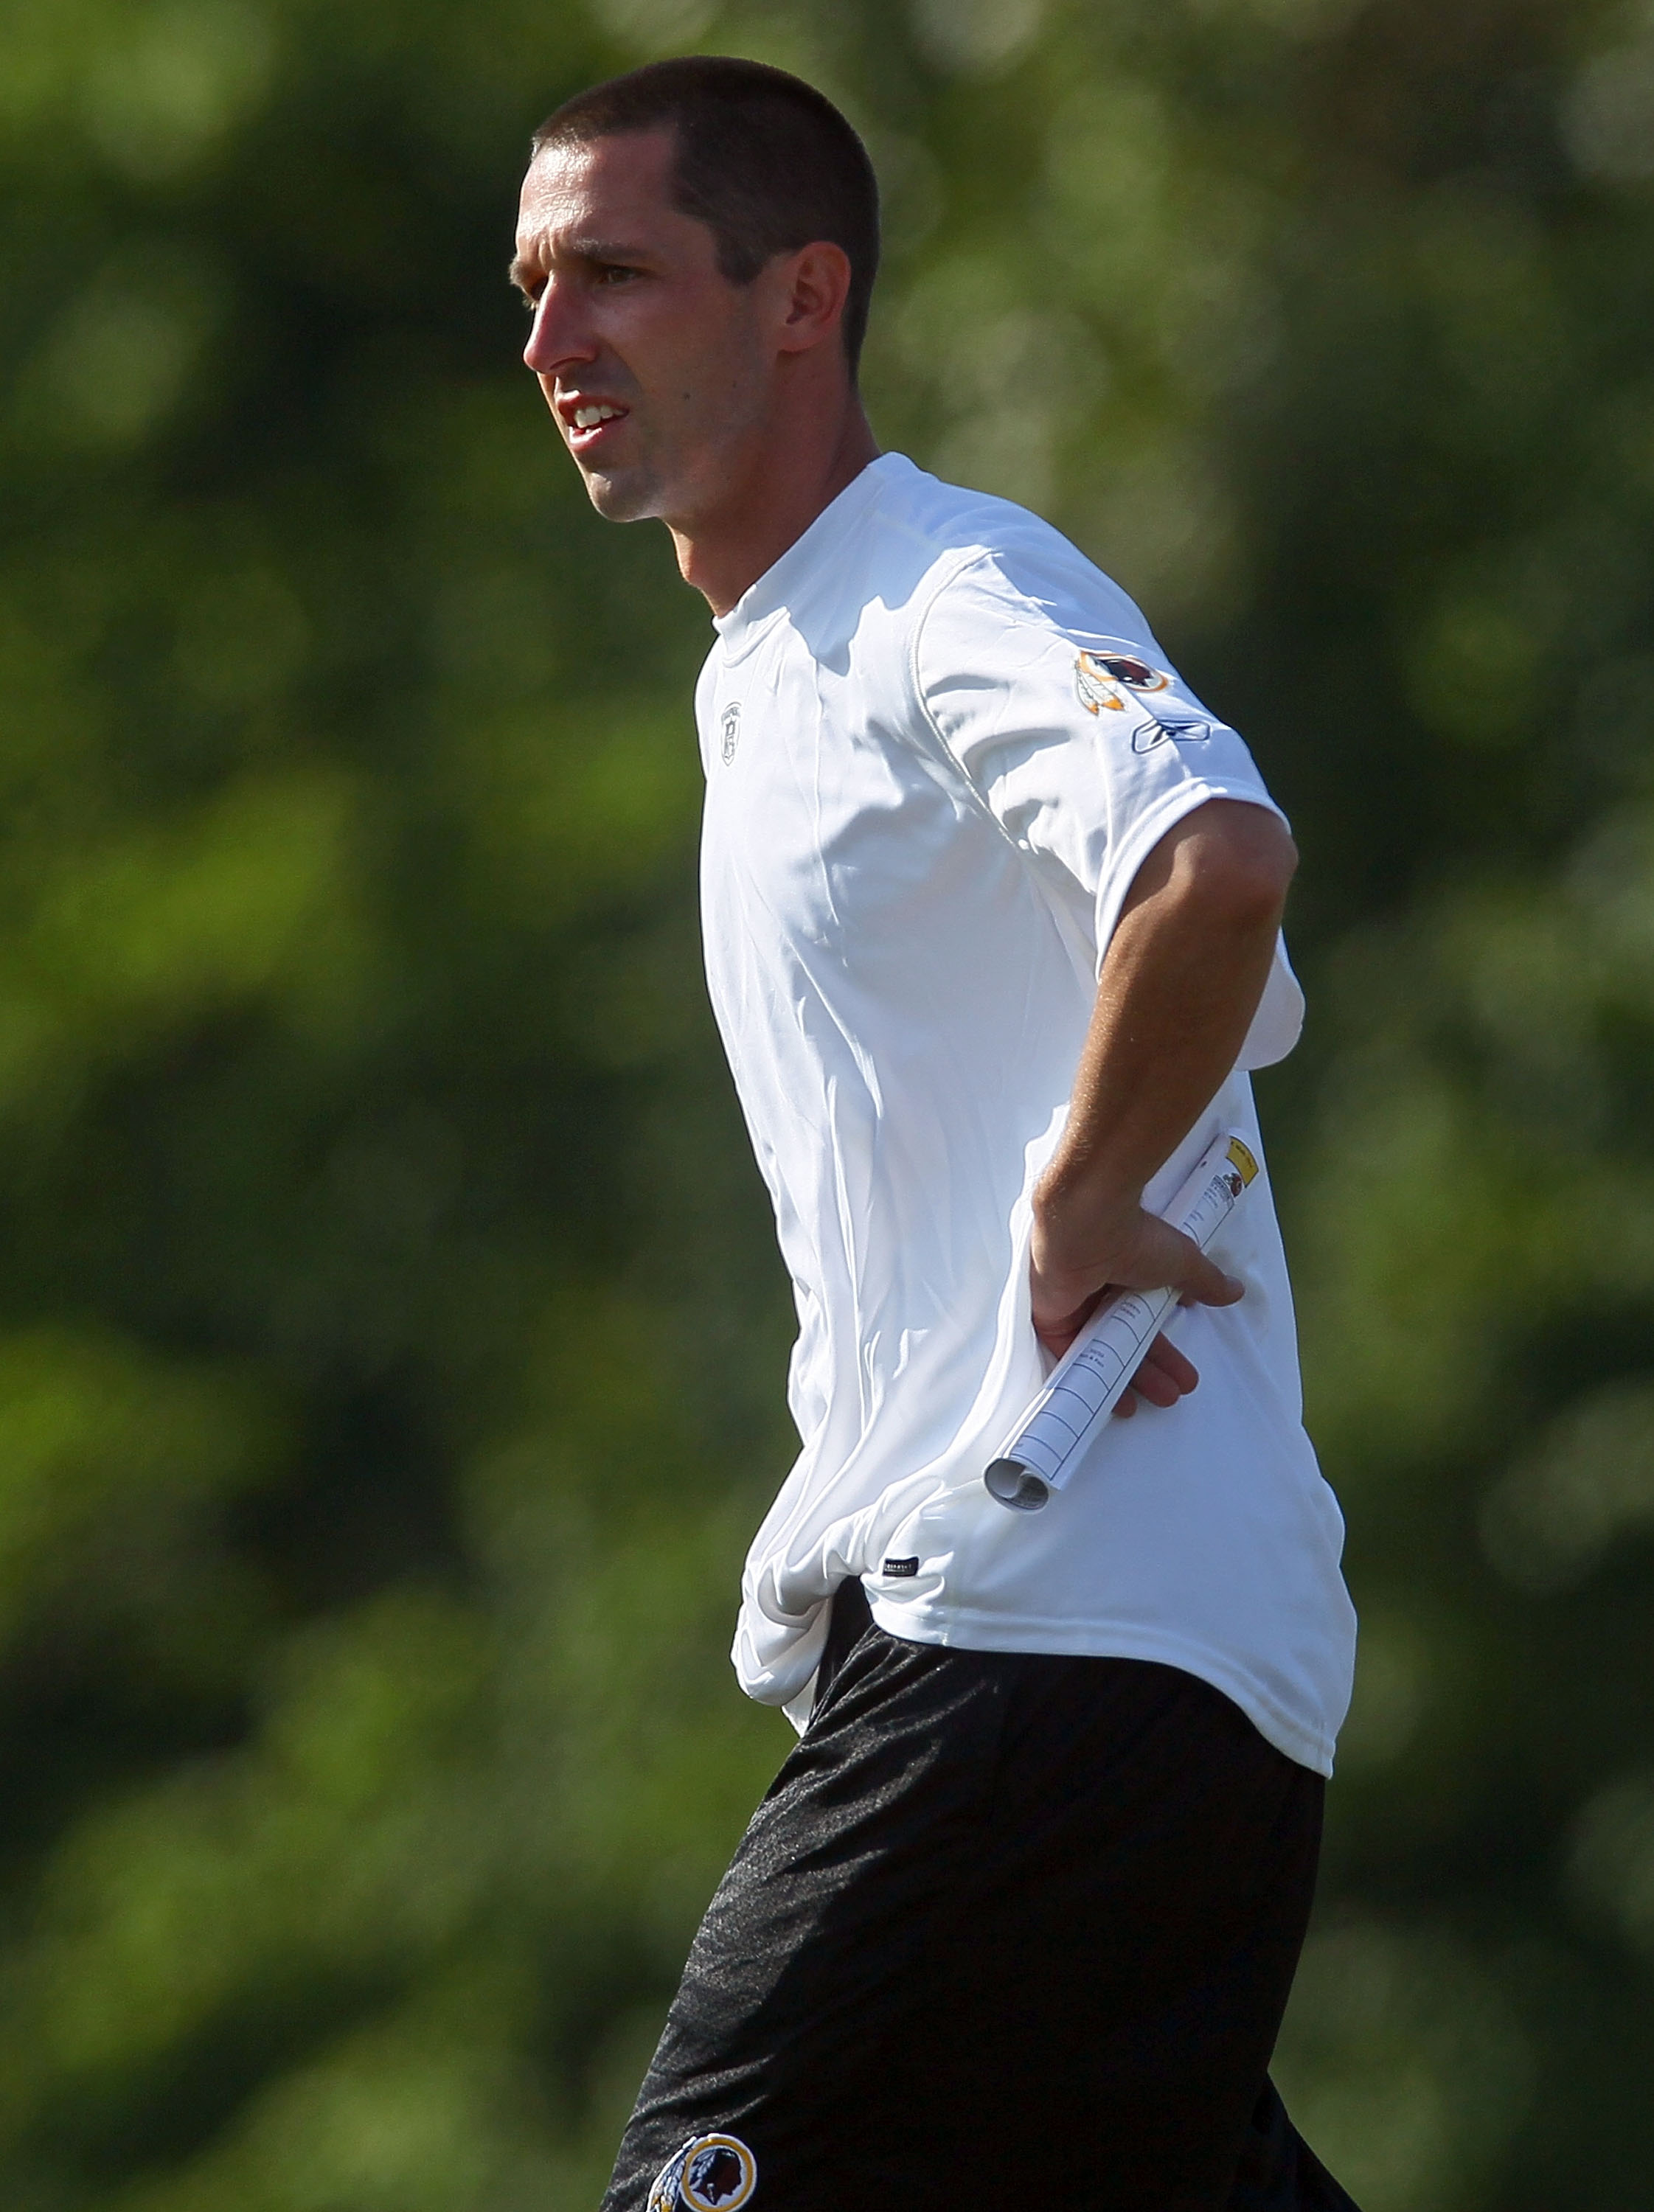 ASHBURN, VA - JULY 30:  Offensive coordinator Kyle Shanahan of the Washington Redskins watches drills during the second day of training camp July 30, 2010 in Ashburn, Virginia.  (Photo by Win McNamee/Getty Images)